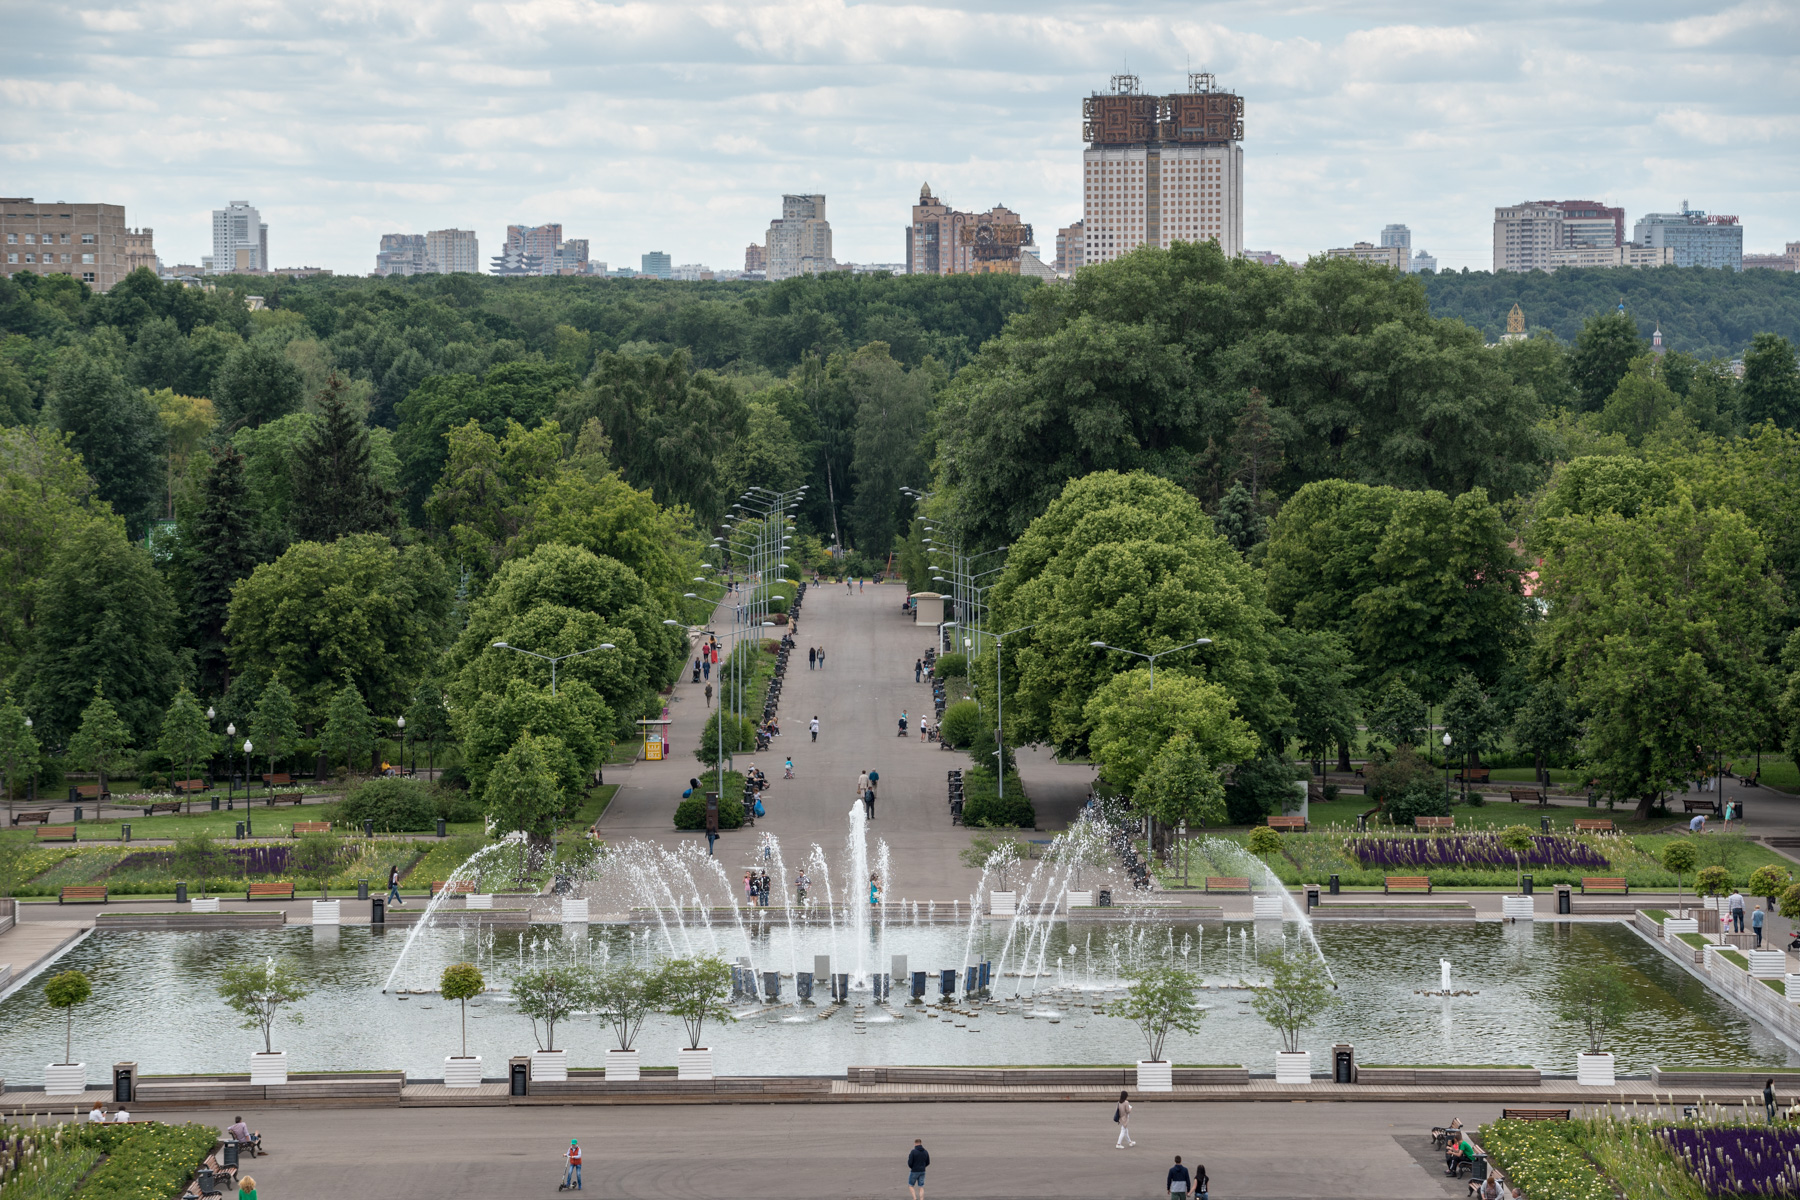 Sightseeing in Moscow Gorky Park